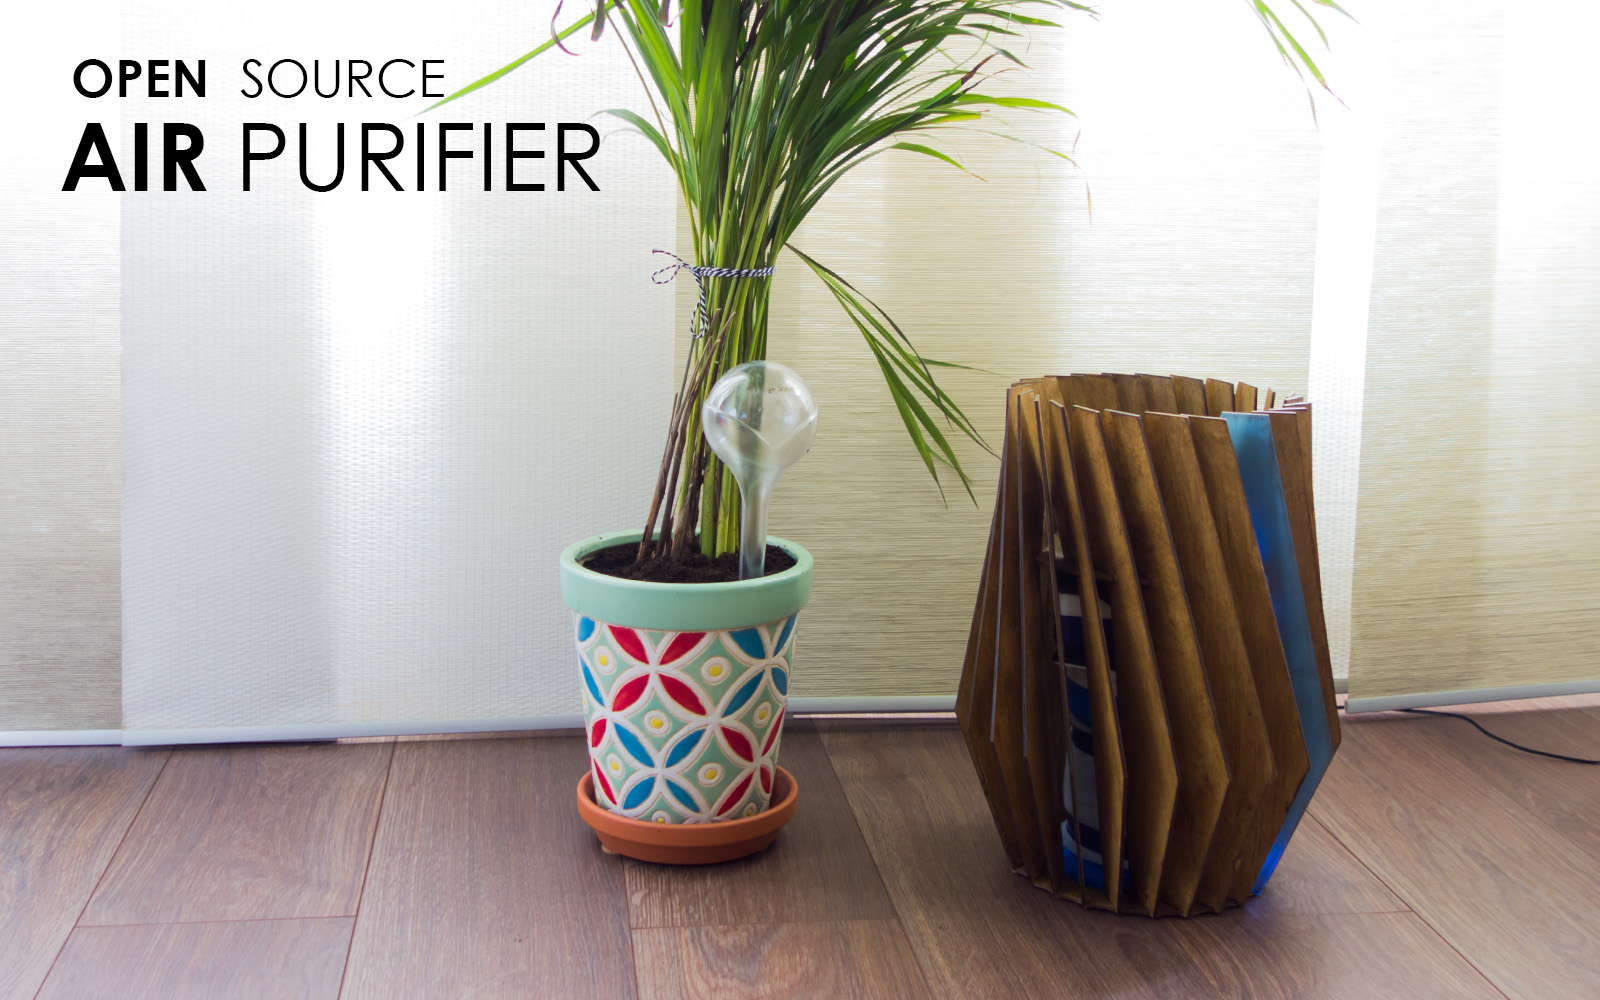 OPEN SOURCE AIR PURIFIER - Ian van Mourik 1